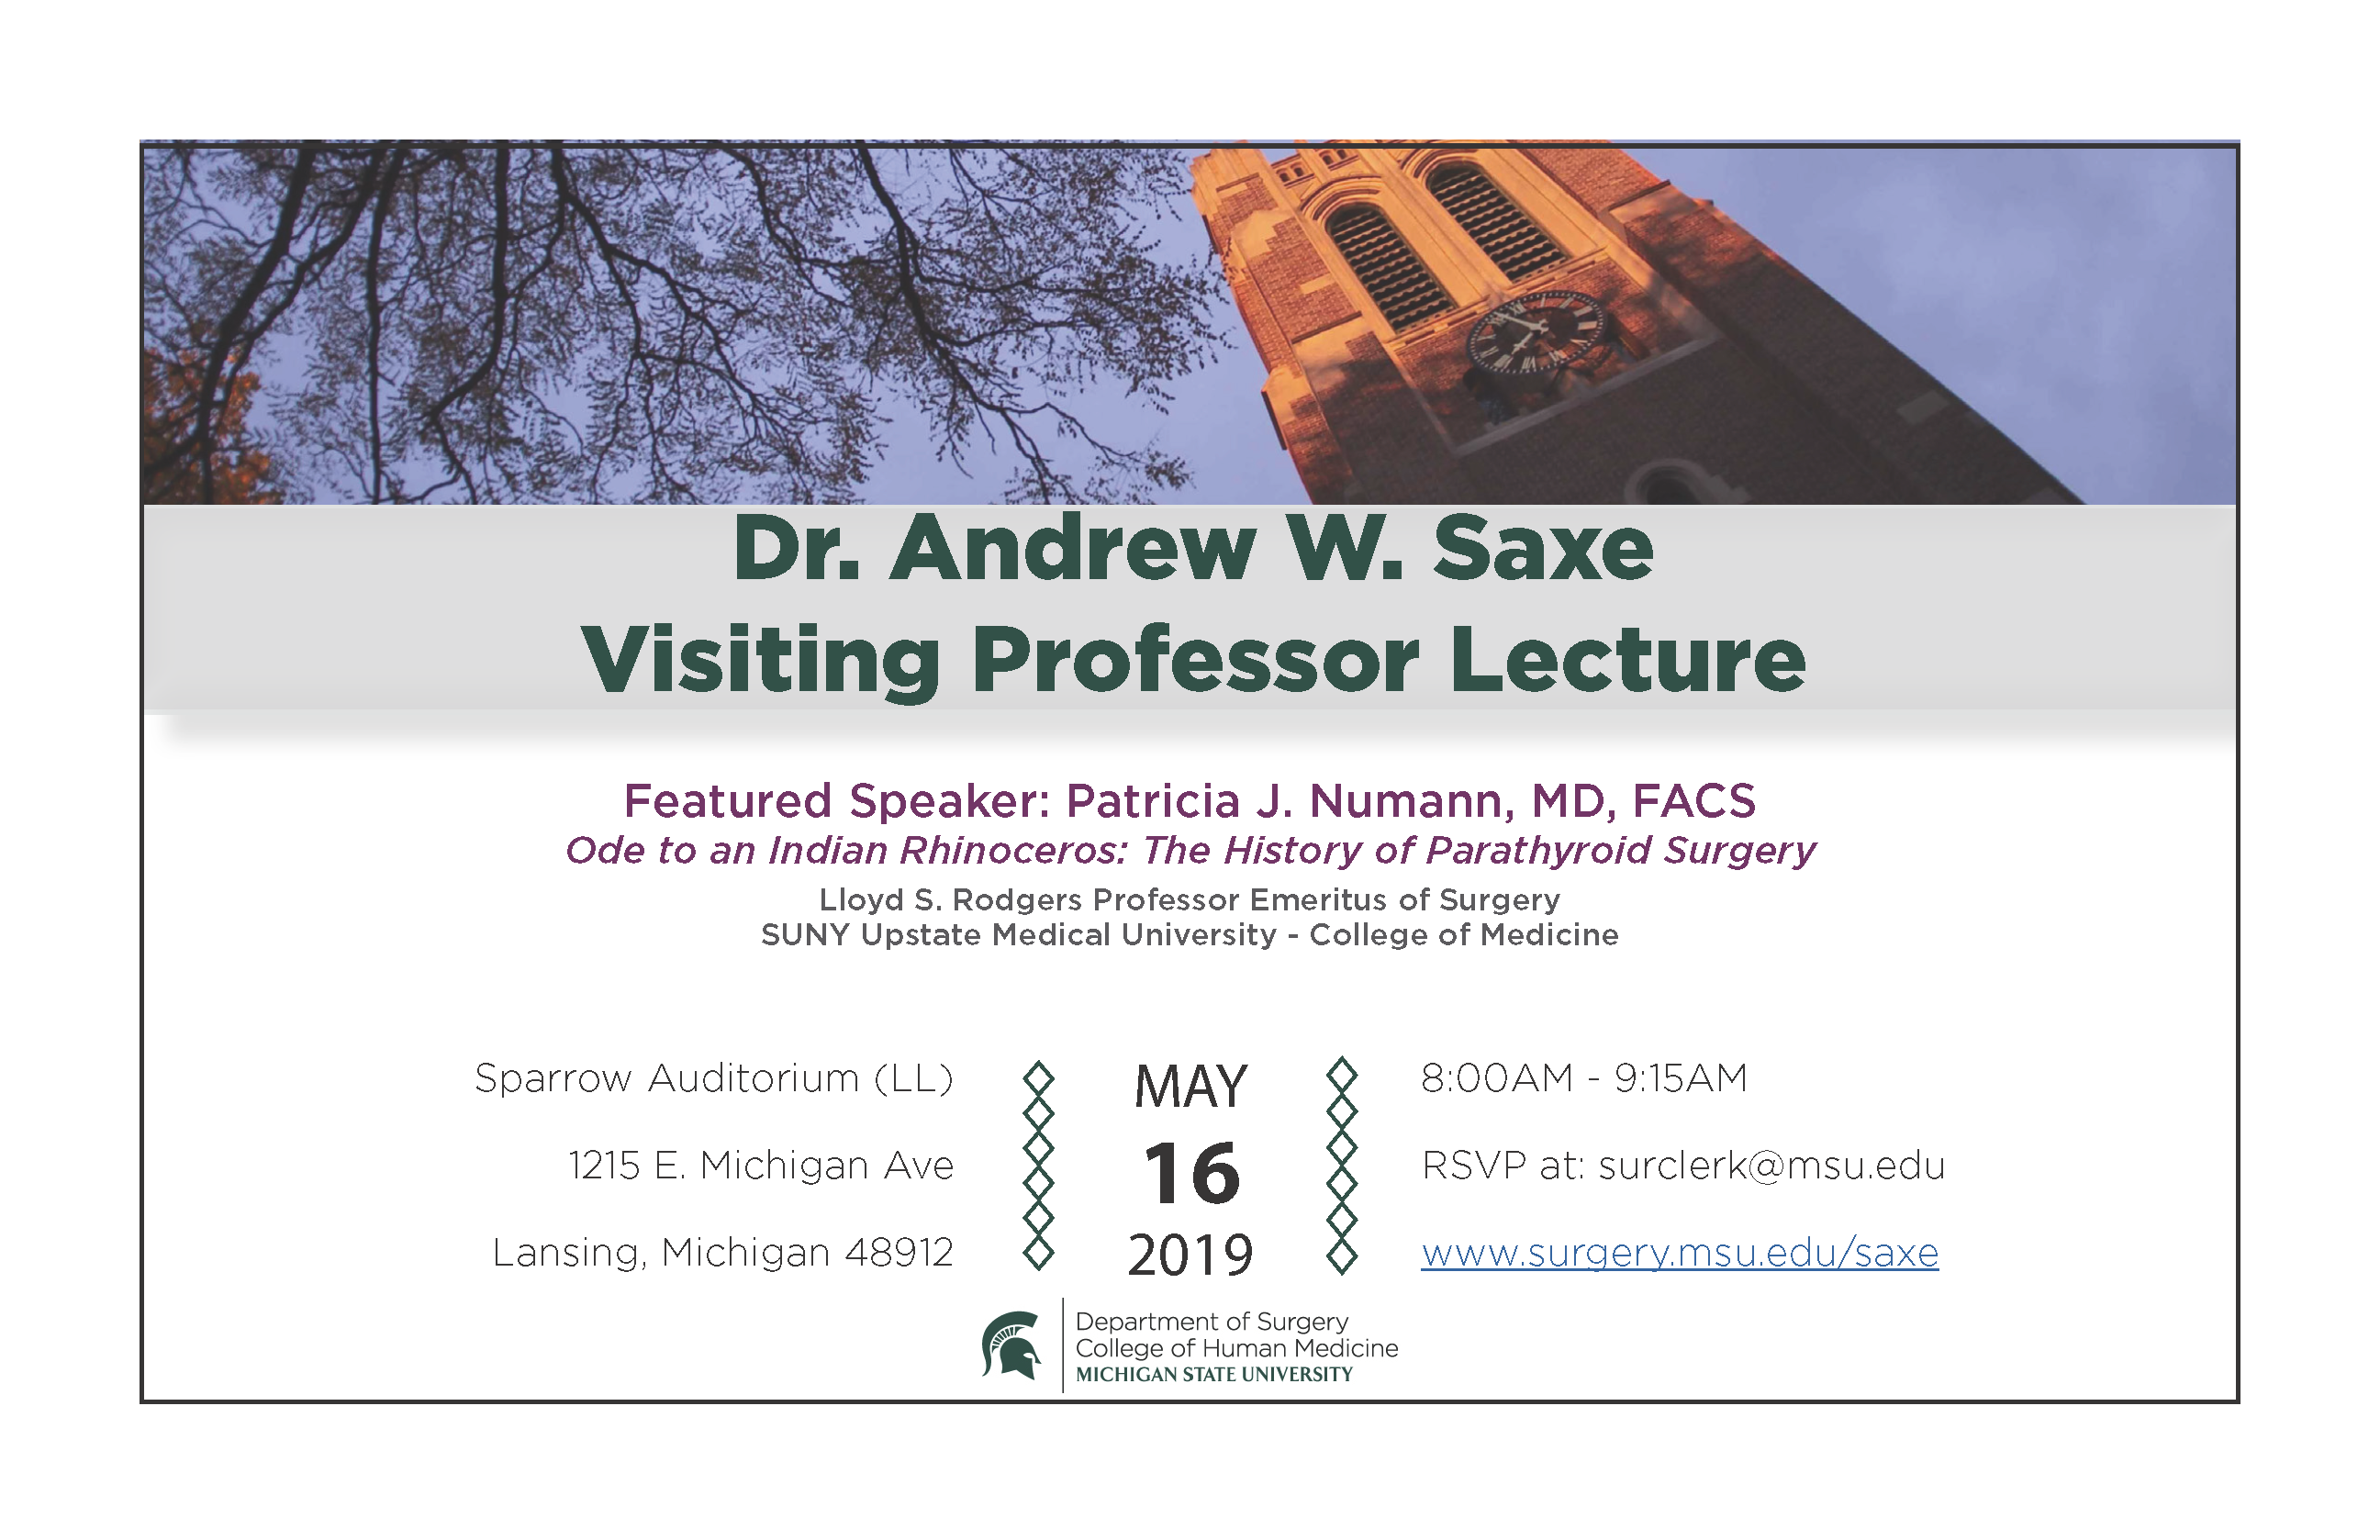 Dr. Saxe Visiting Professor Lecture